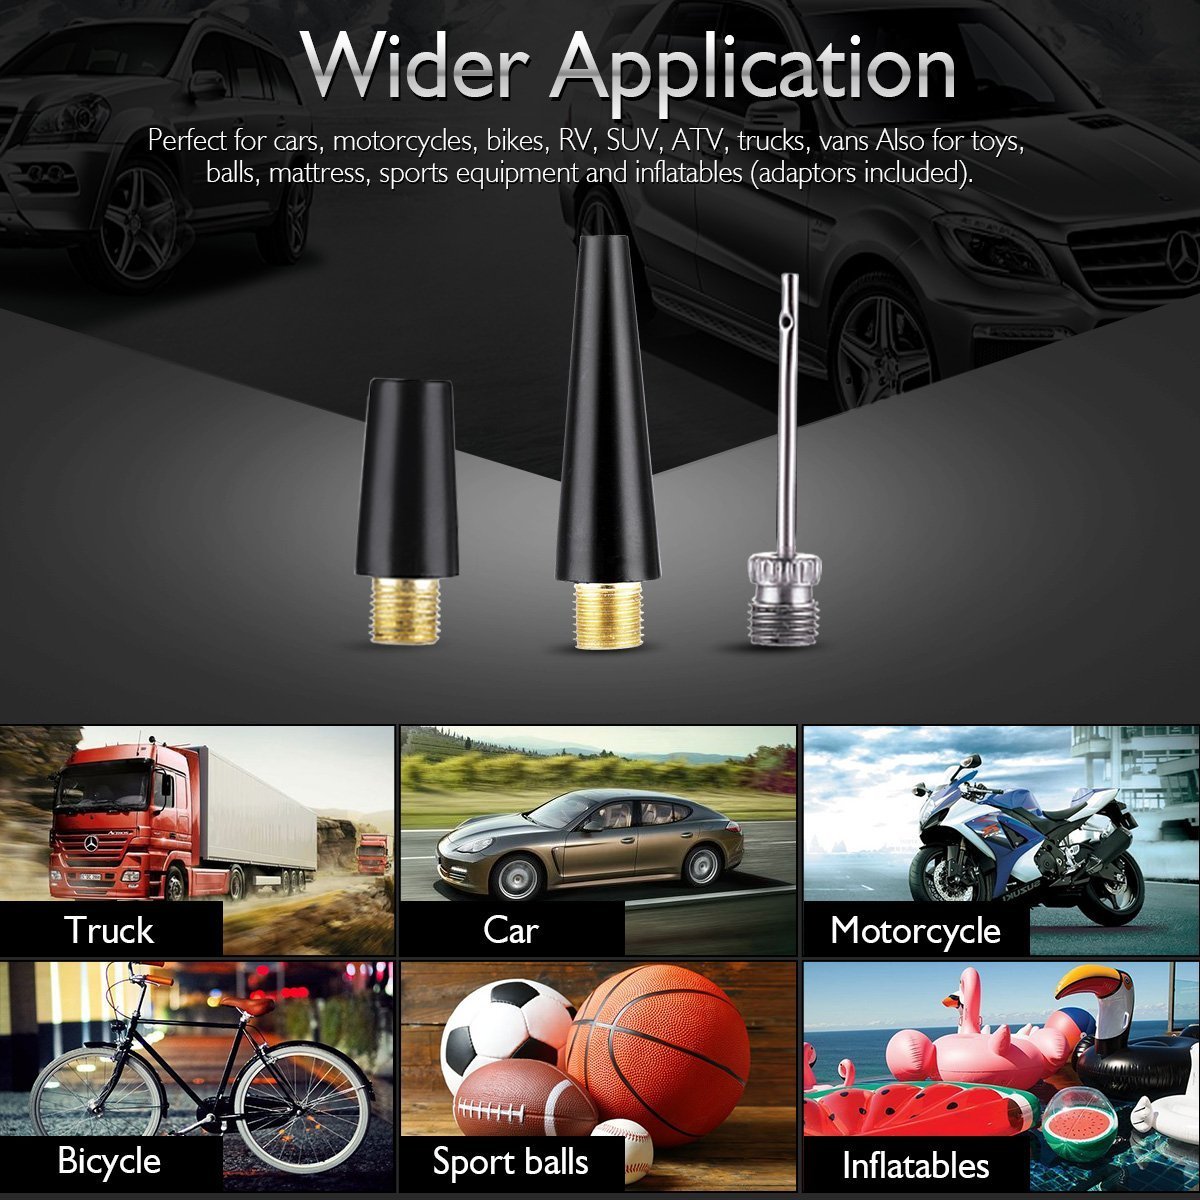 RV Auto 12V Tire Inflator for Car Truck Bicycle and Other Inflatables Heavy Duty Portable Air Pump Audew Dual Cylinder Air Compressor Pump